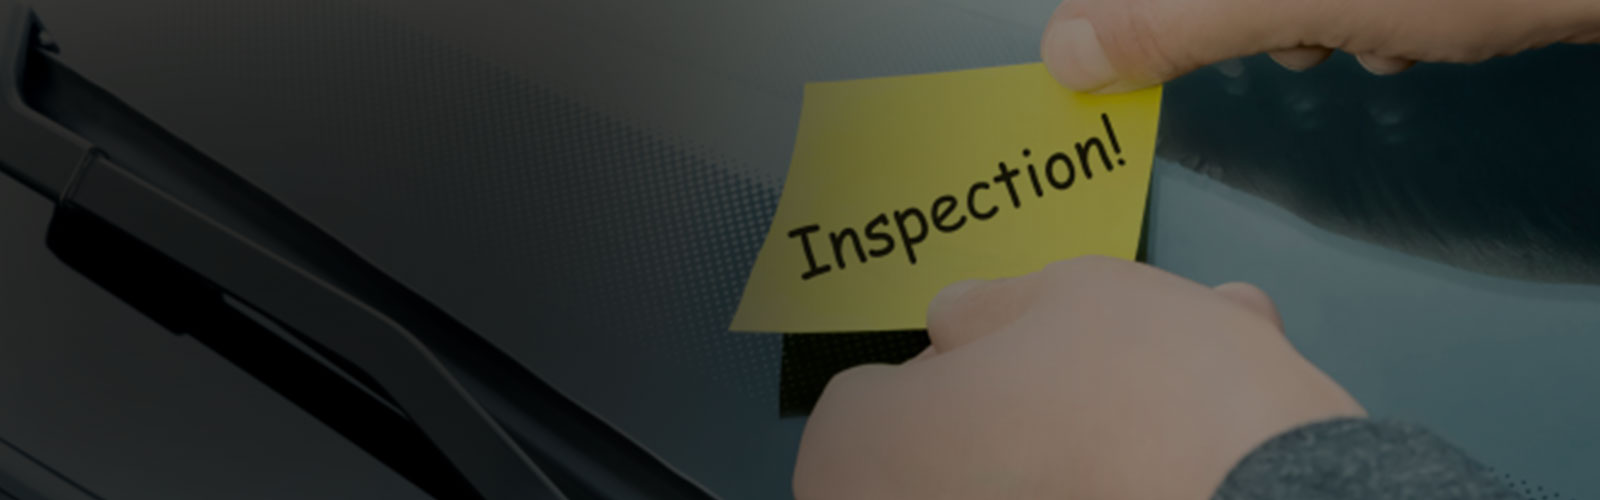 Professional Inspection Services